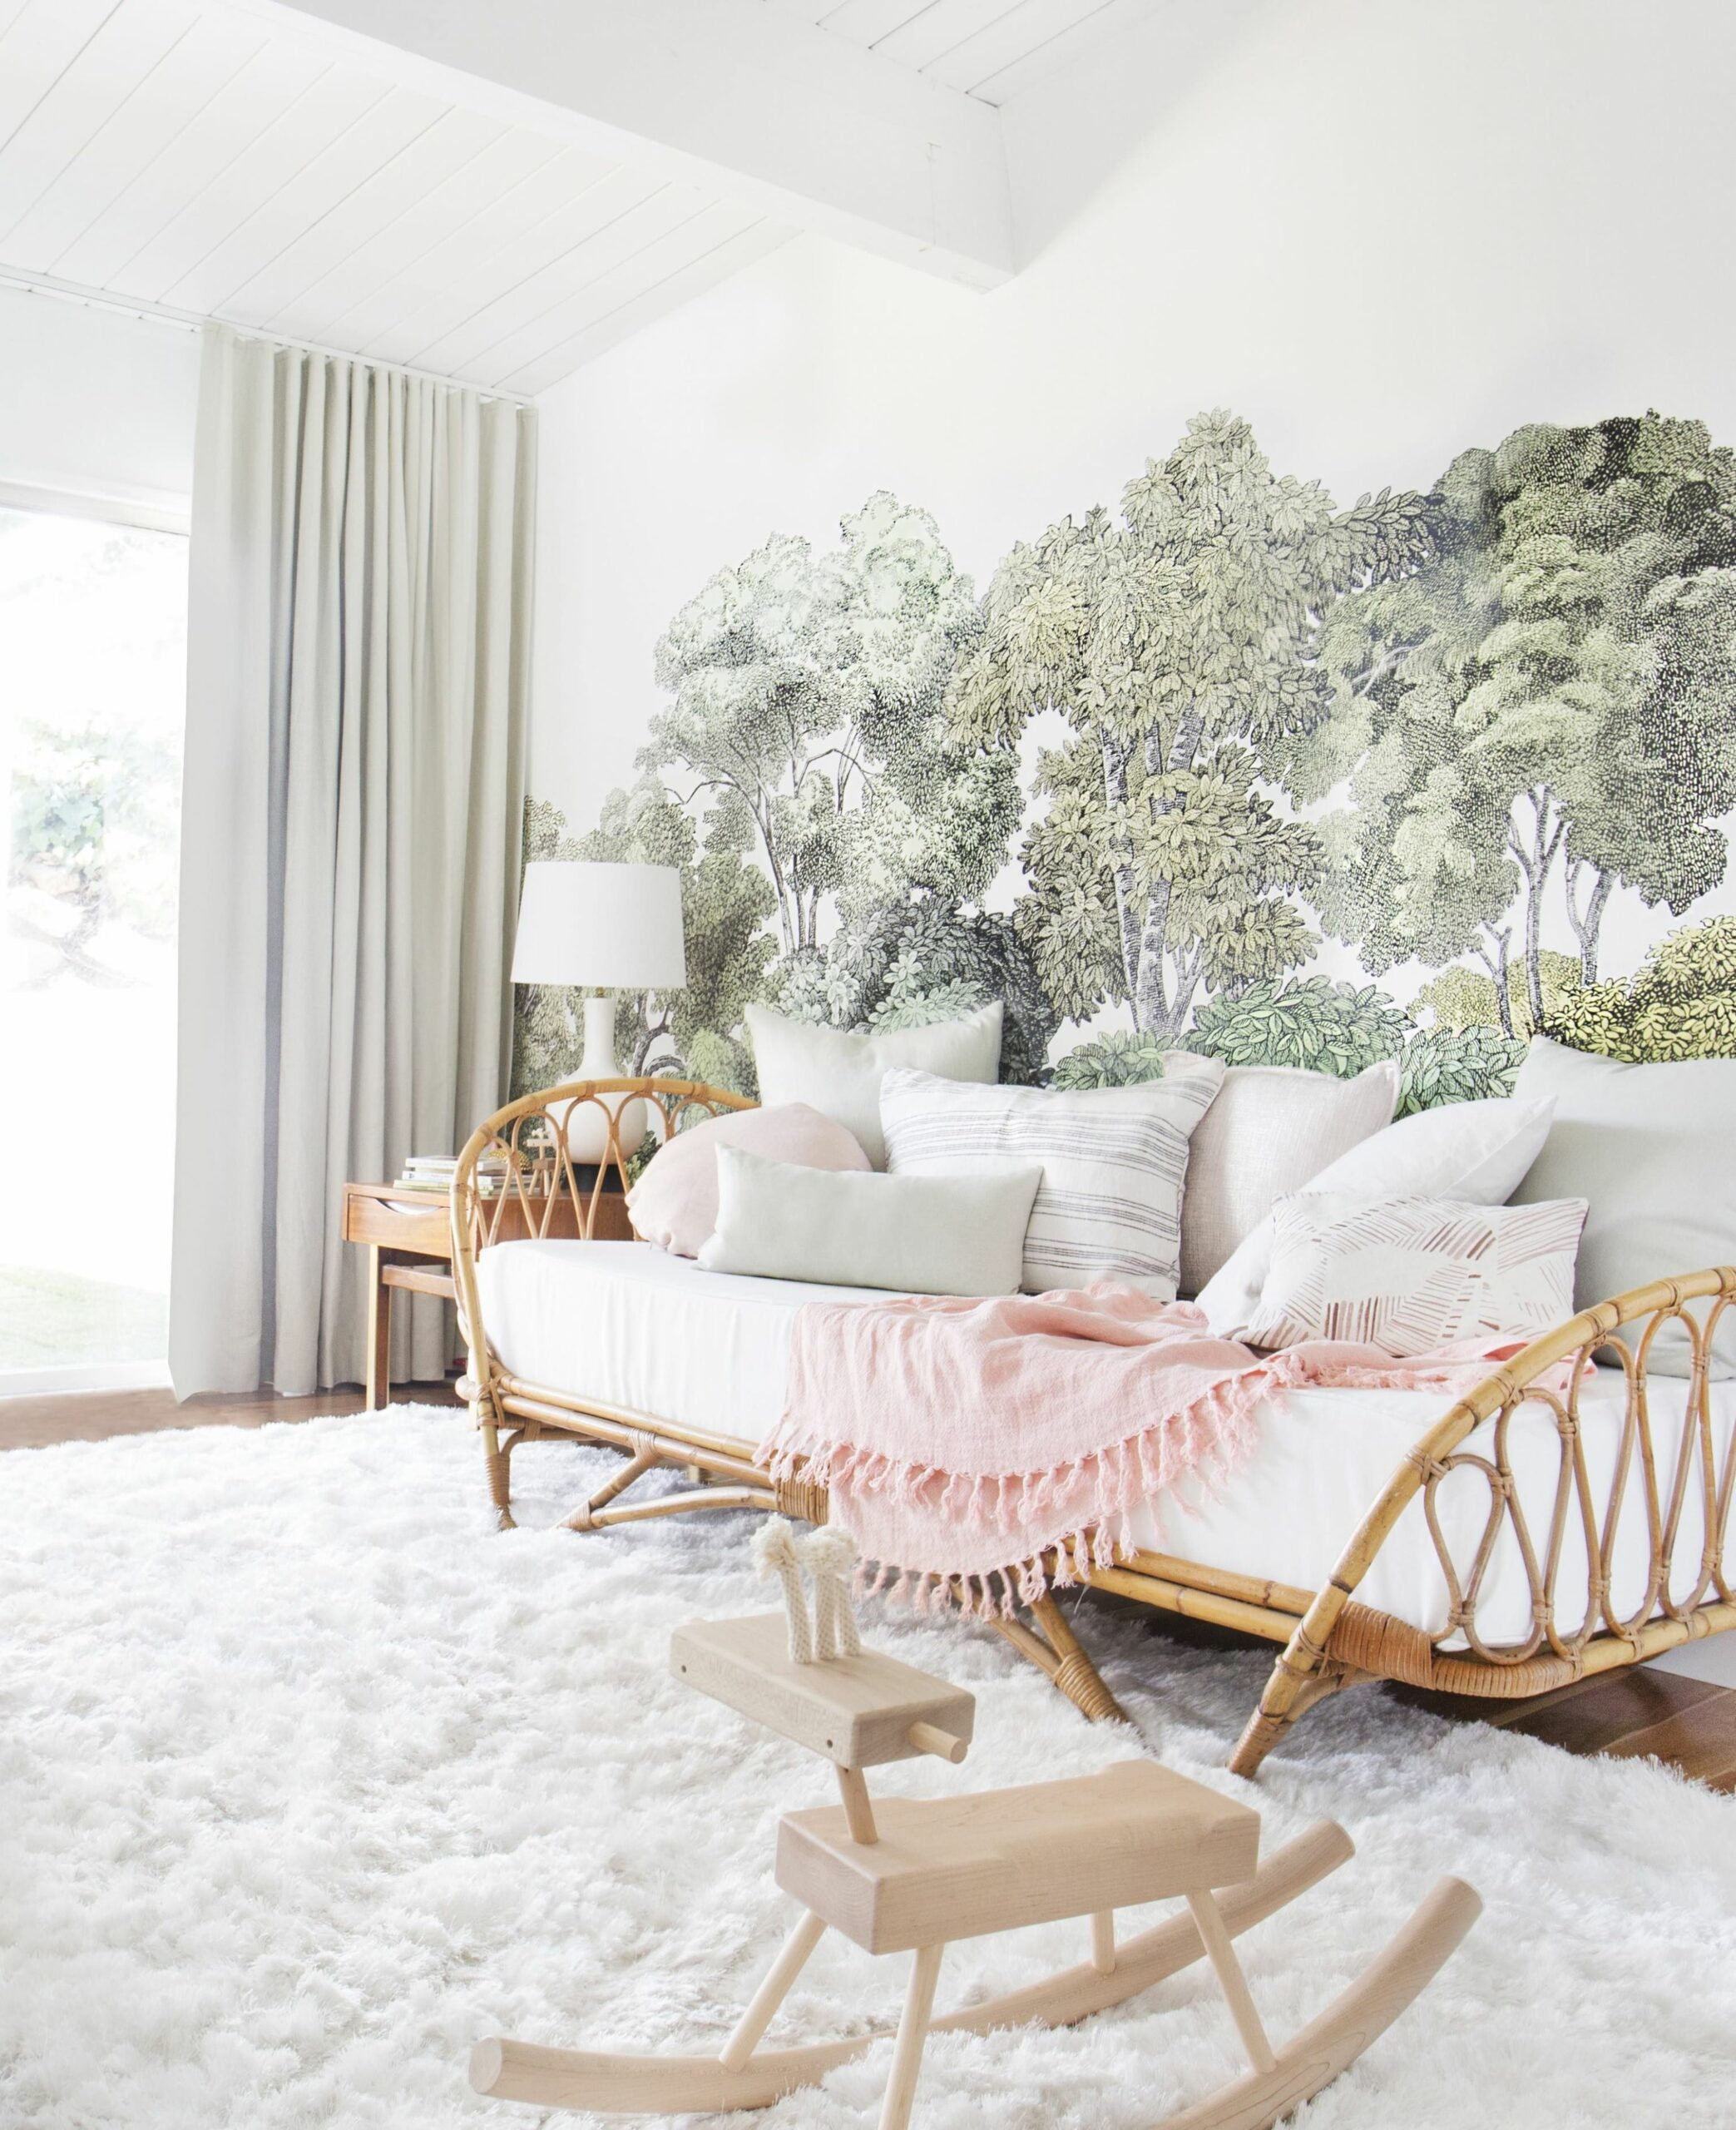 8 Bedroom Decorating Ideas - How to Design a Master Bedroom - makeup room rugs